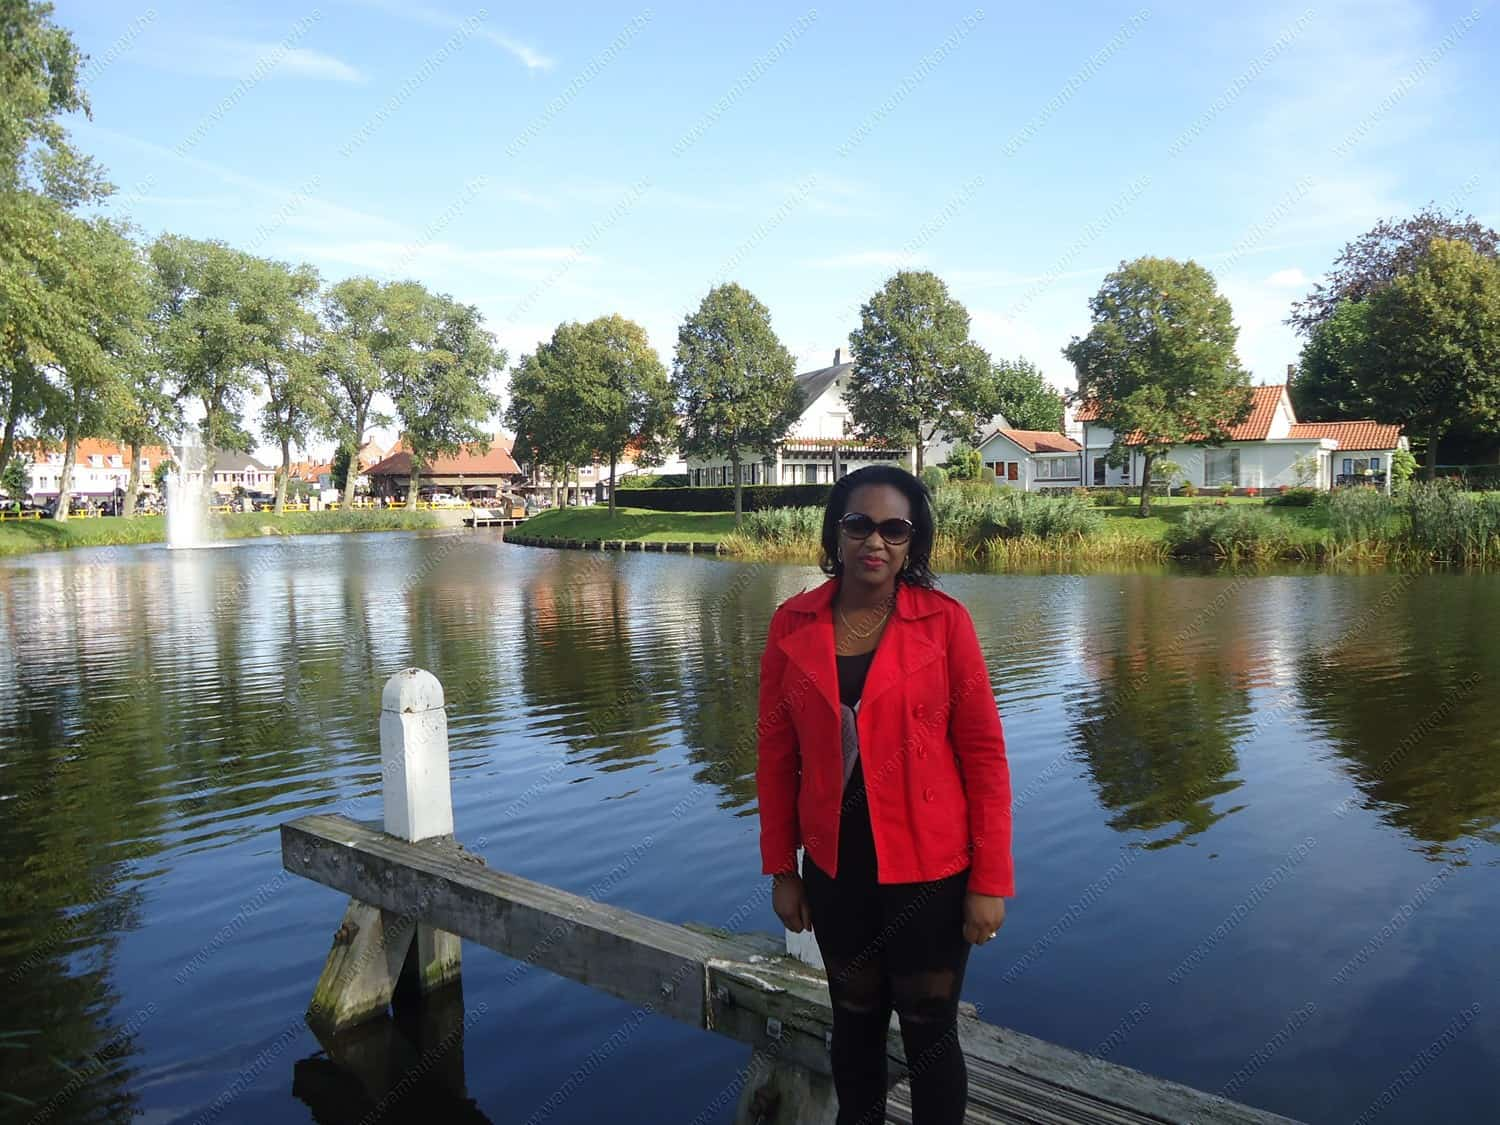 Experience From The Town of Sluis